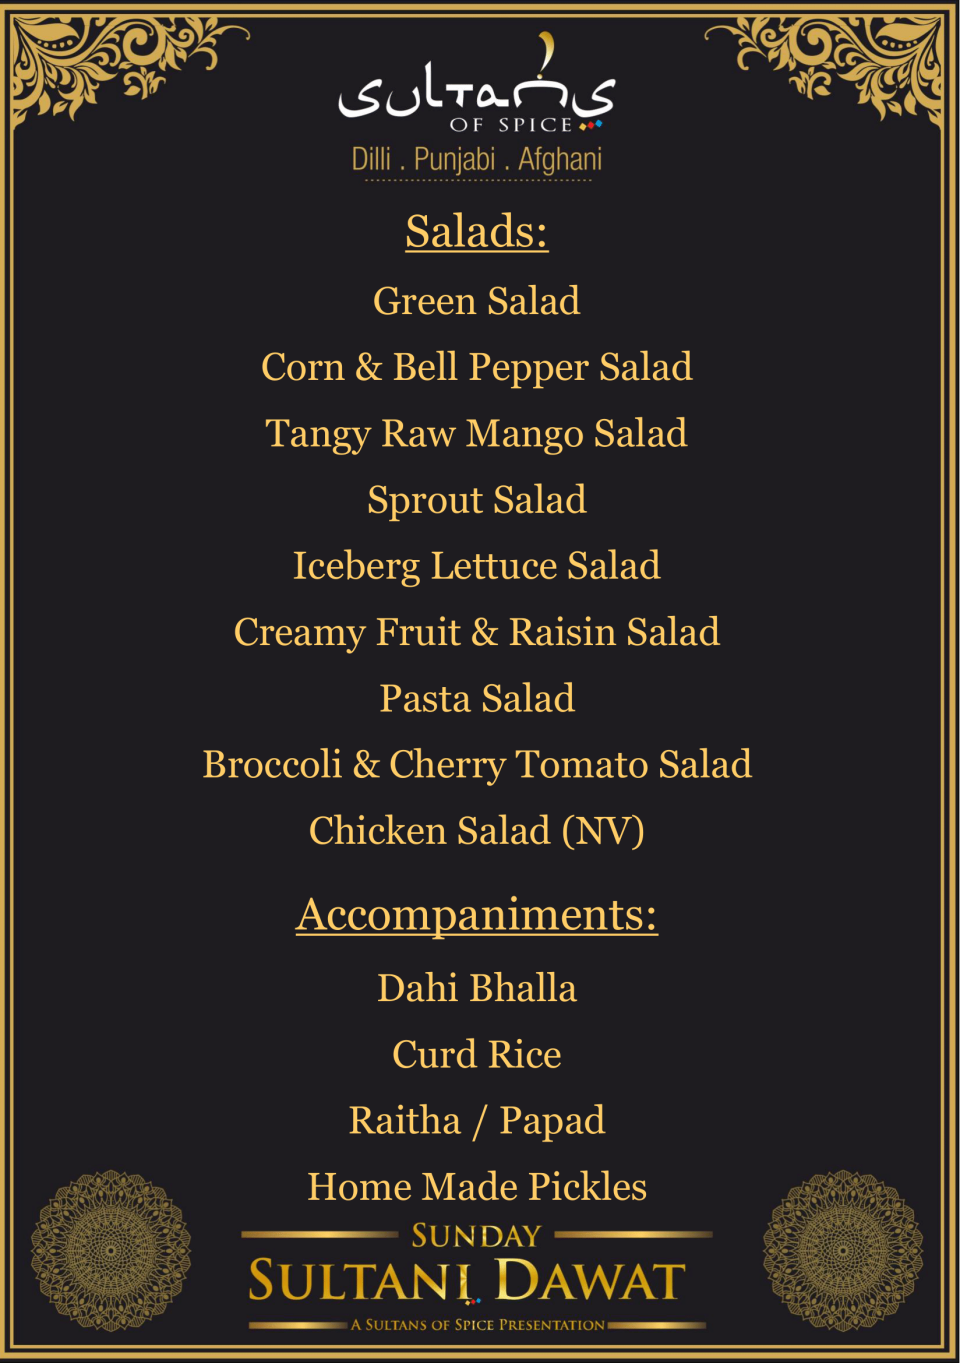 SAMPLE MENU SUNDAY SULTANI DAWAT AUG 2019 mdg02n-3